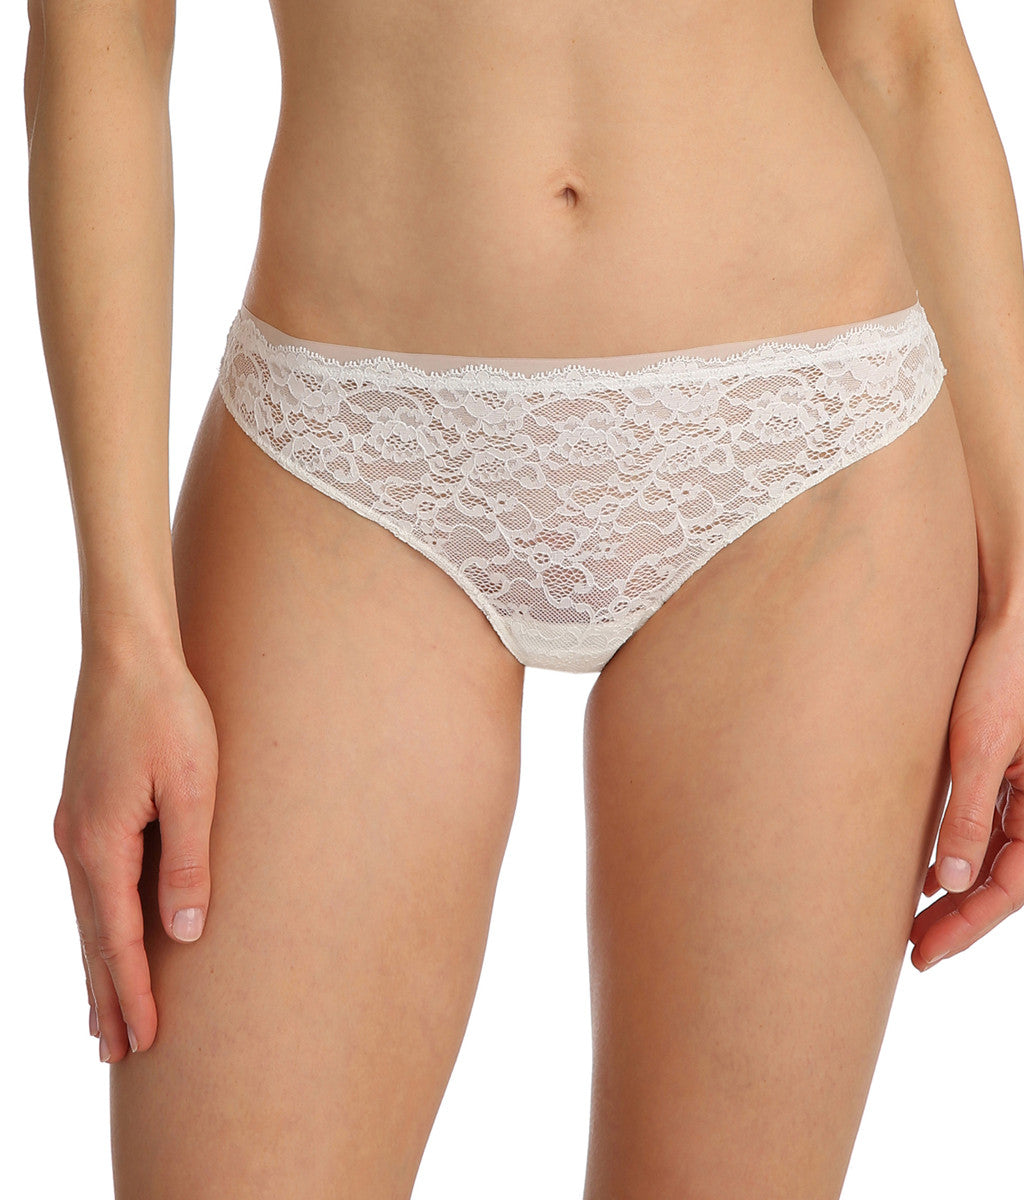 Marie Jo 'Color Studio' Lace (Natural) Thong - Sandra Dee - Model Shot - Front